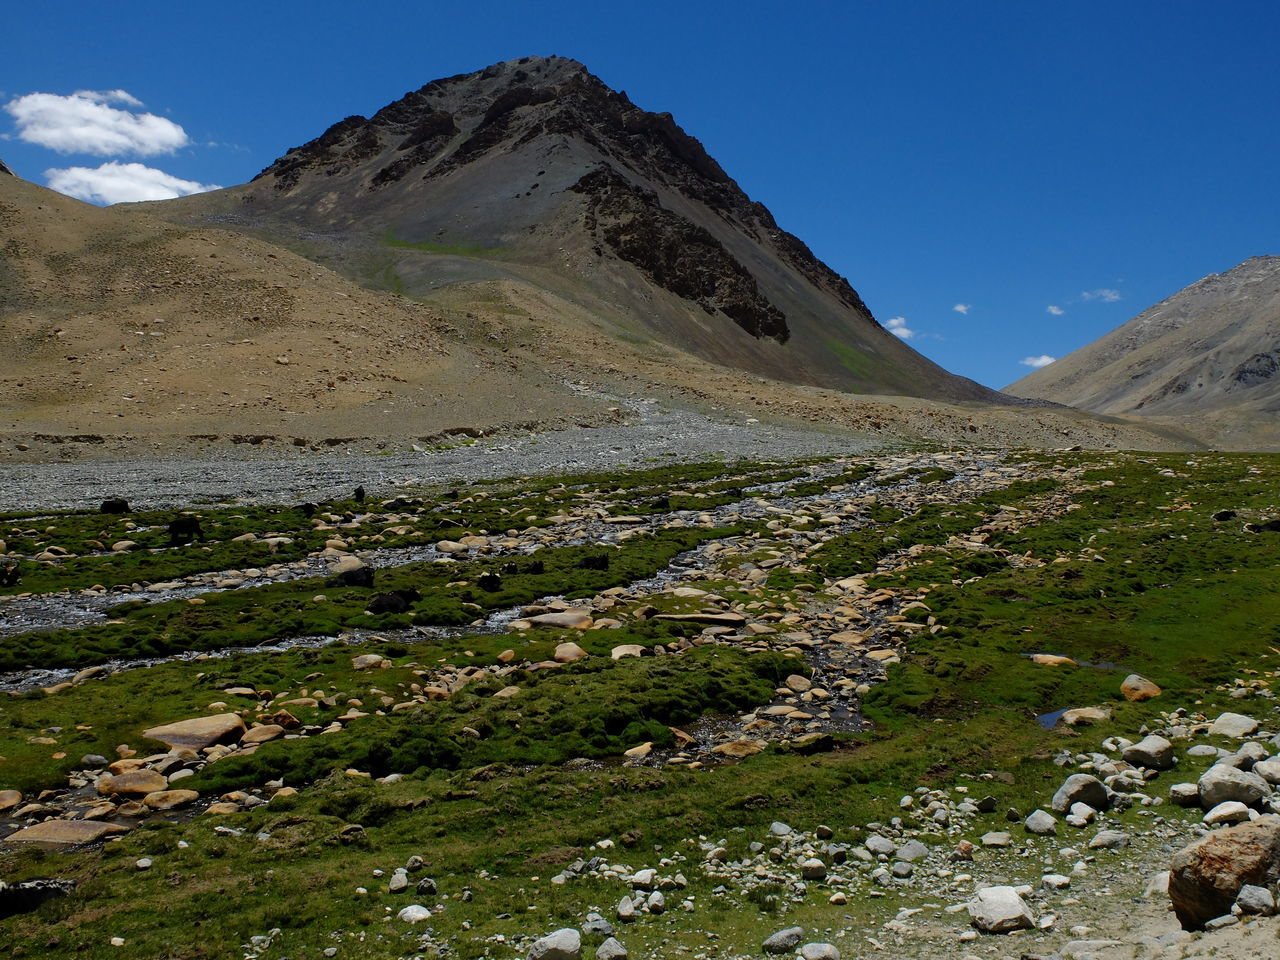 Beauty In Nature Day Jammu And Kashmir Landscape Leh Ladakh Mountain Nature No People Outdoors Sand Dune Scenics